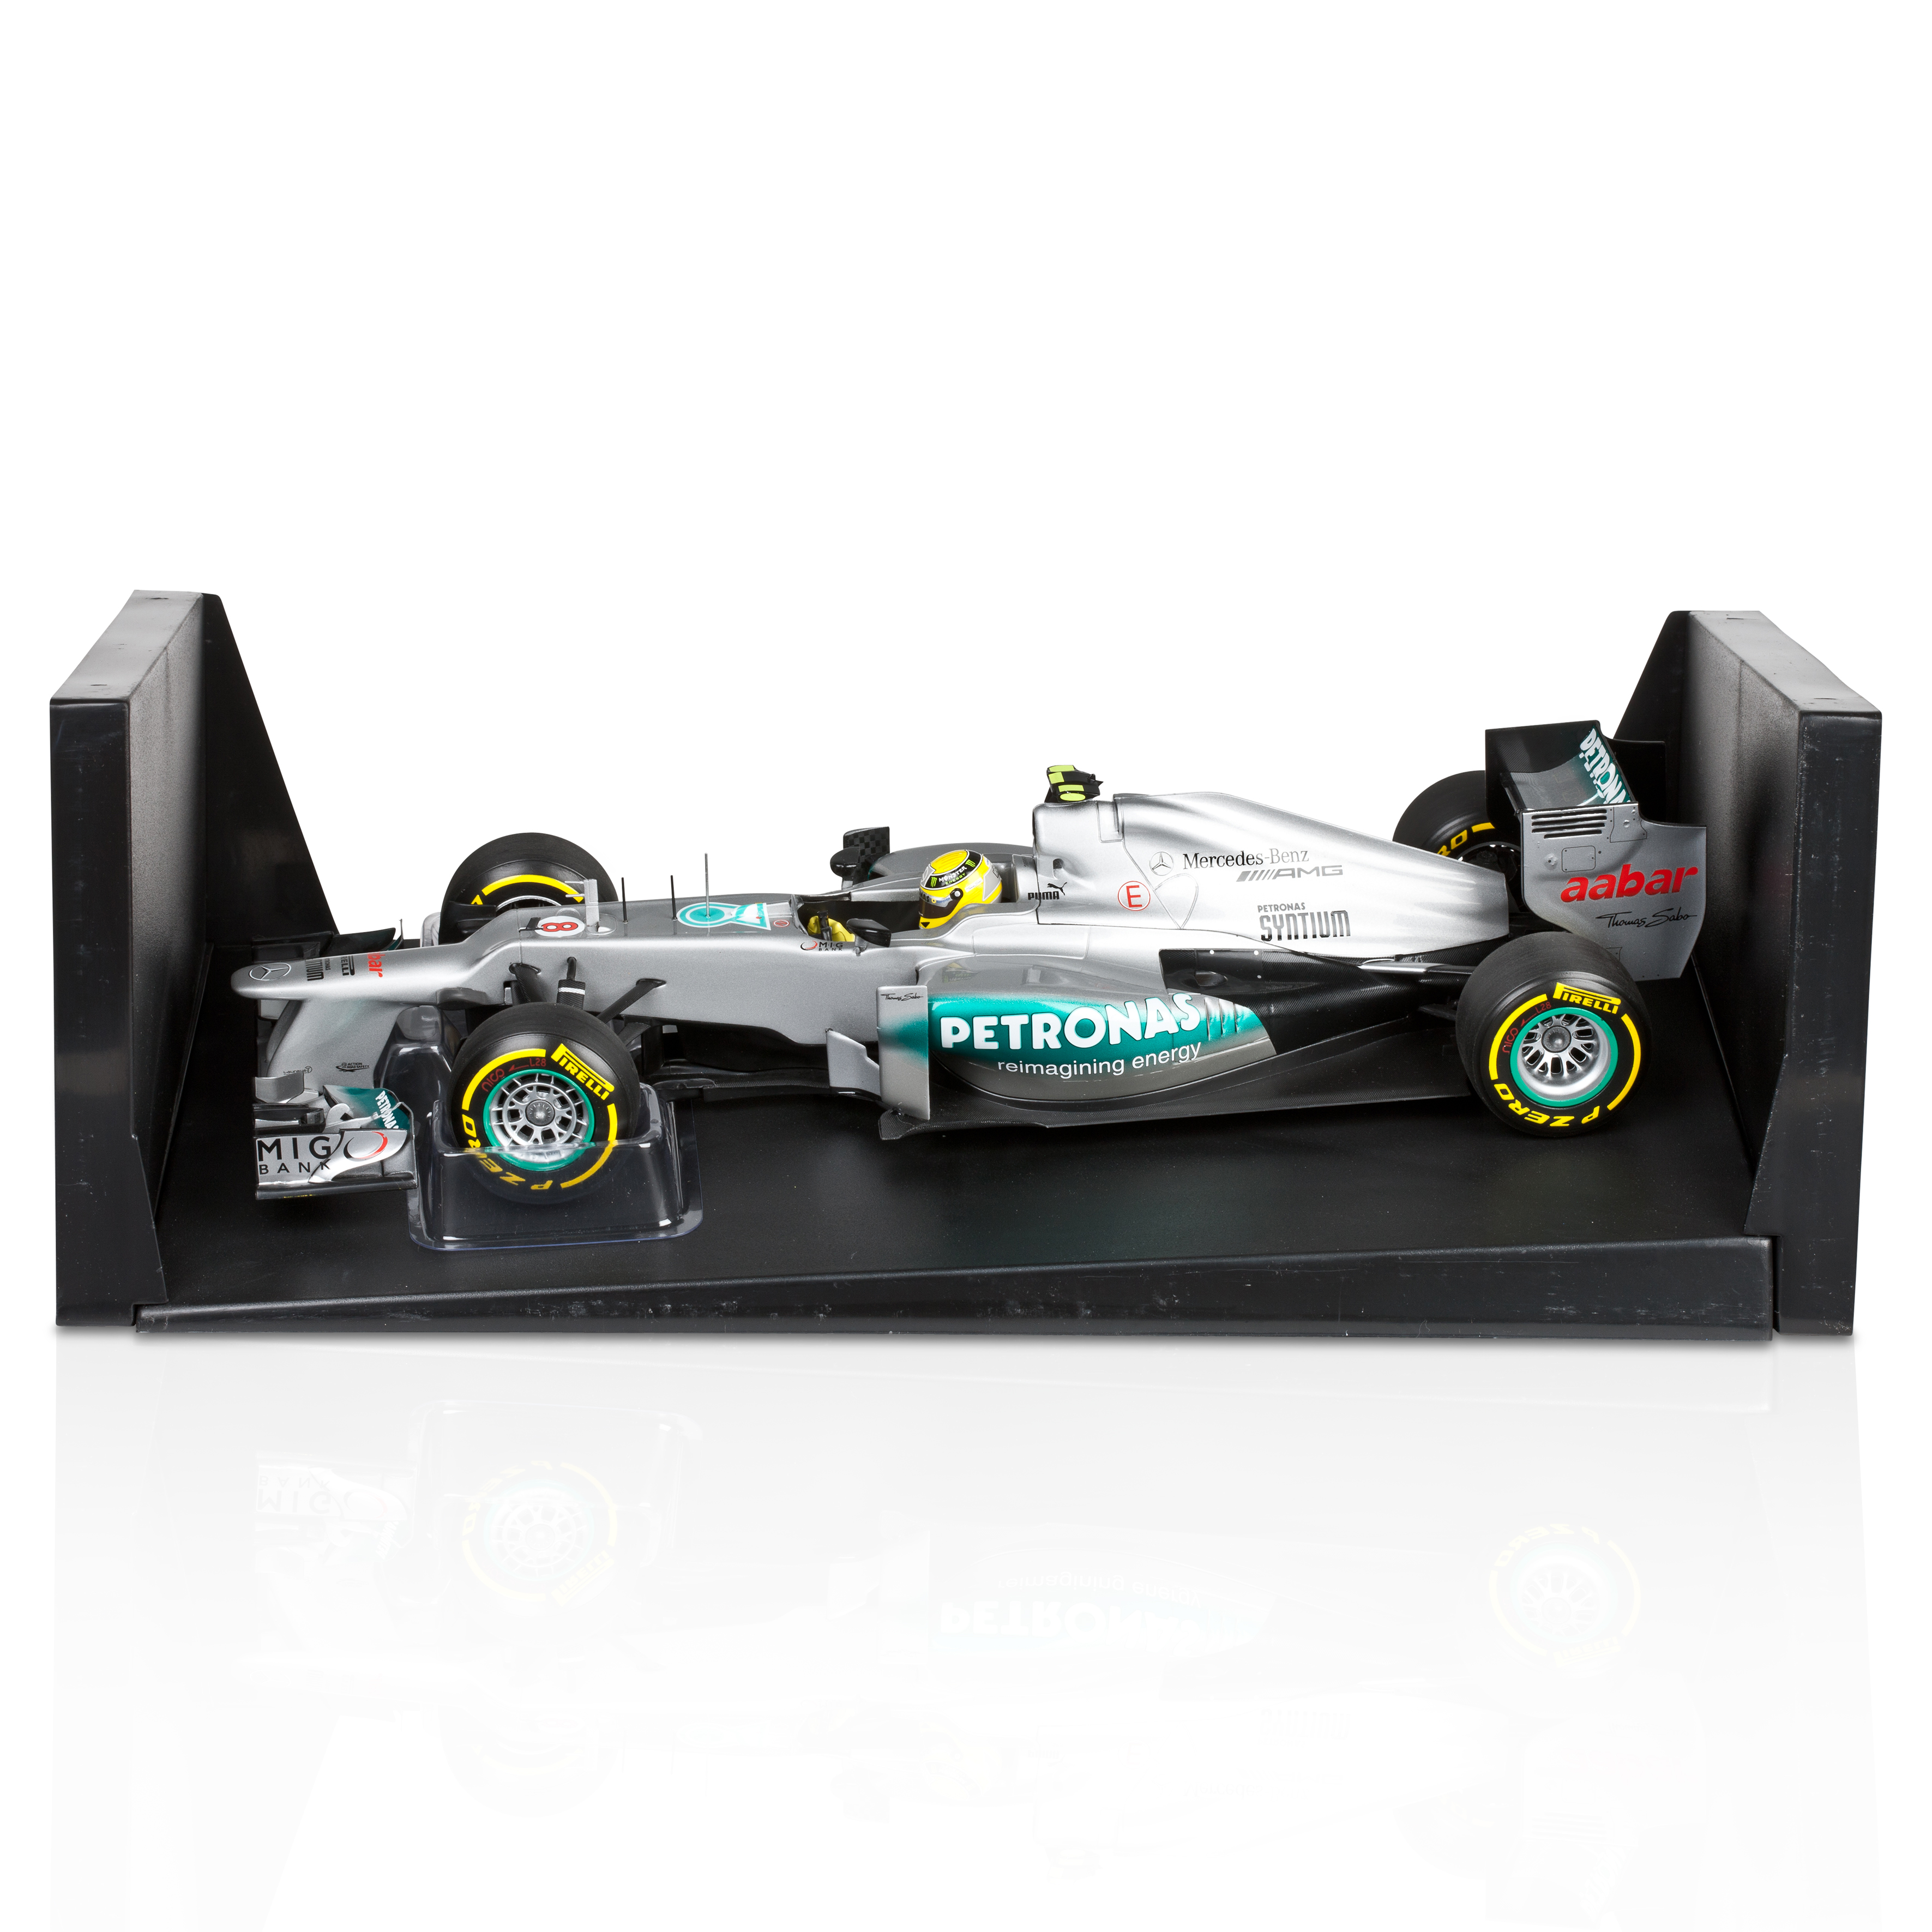 Mercedes AMG Petronas F1 Team W03 2012 Nico Rosberg 1:18 Scale